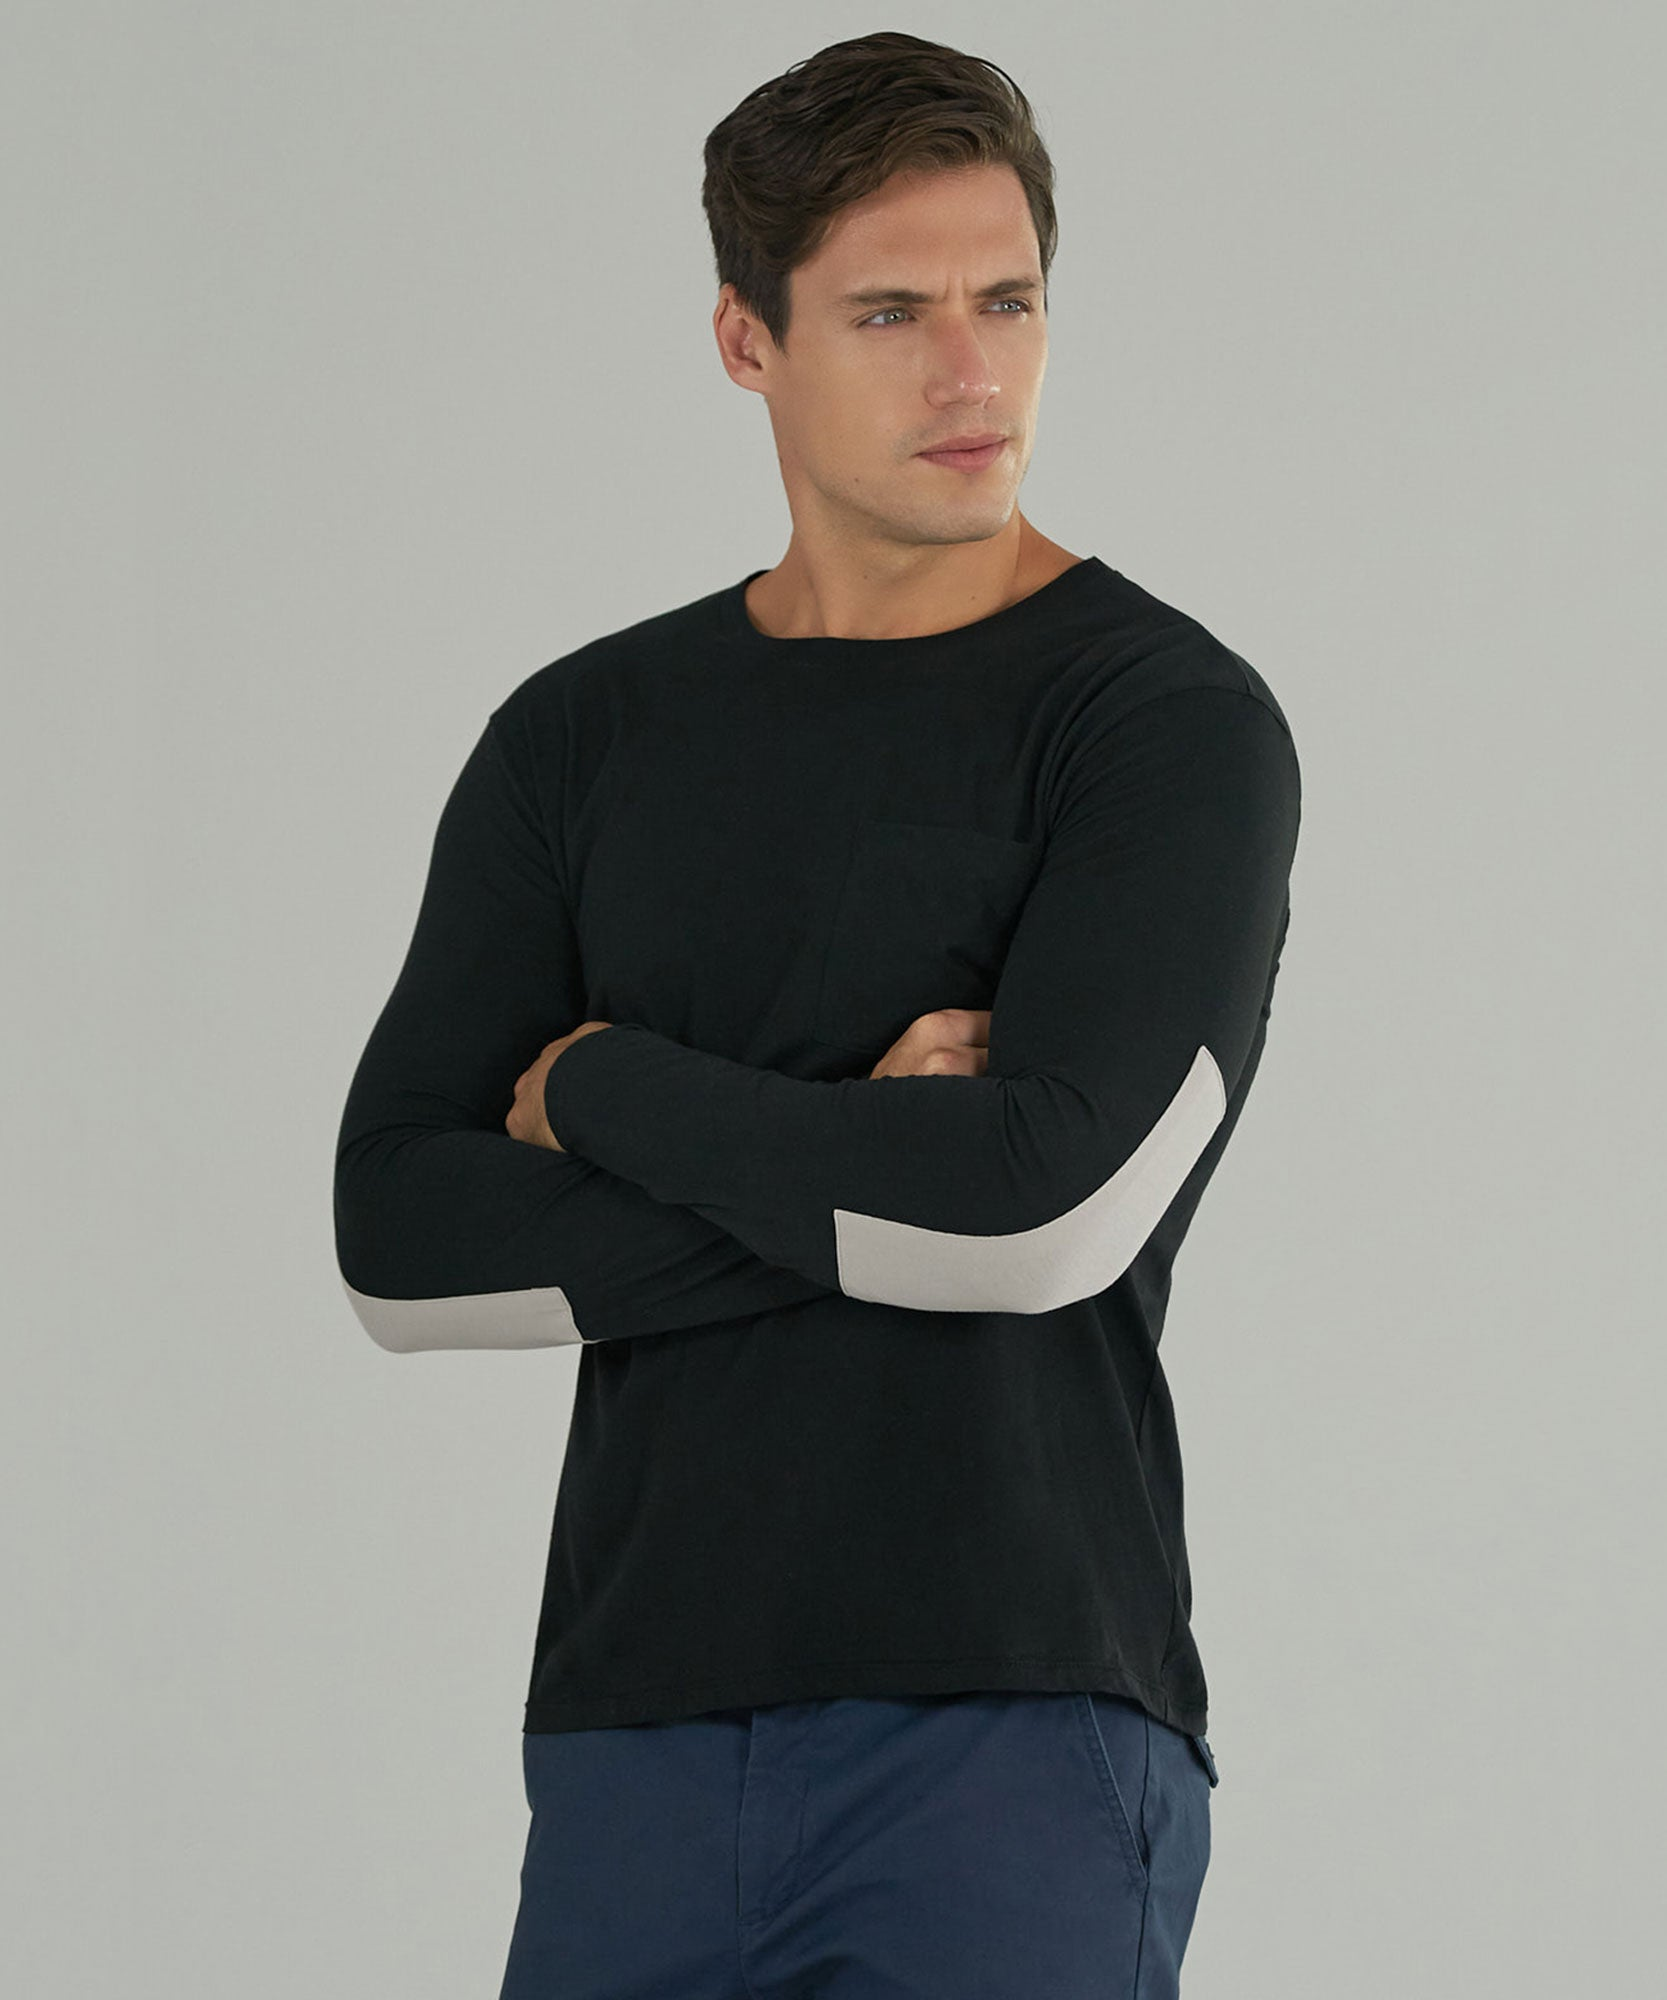 Black Combo Classic Jersey Long Sleeve Crew Neck Pocket Tee - Men's Long Sleeve T-Shirt by ATM Anthony Thomas Melillo